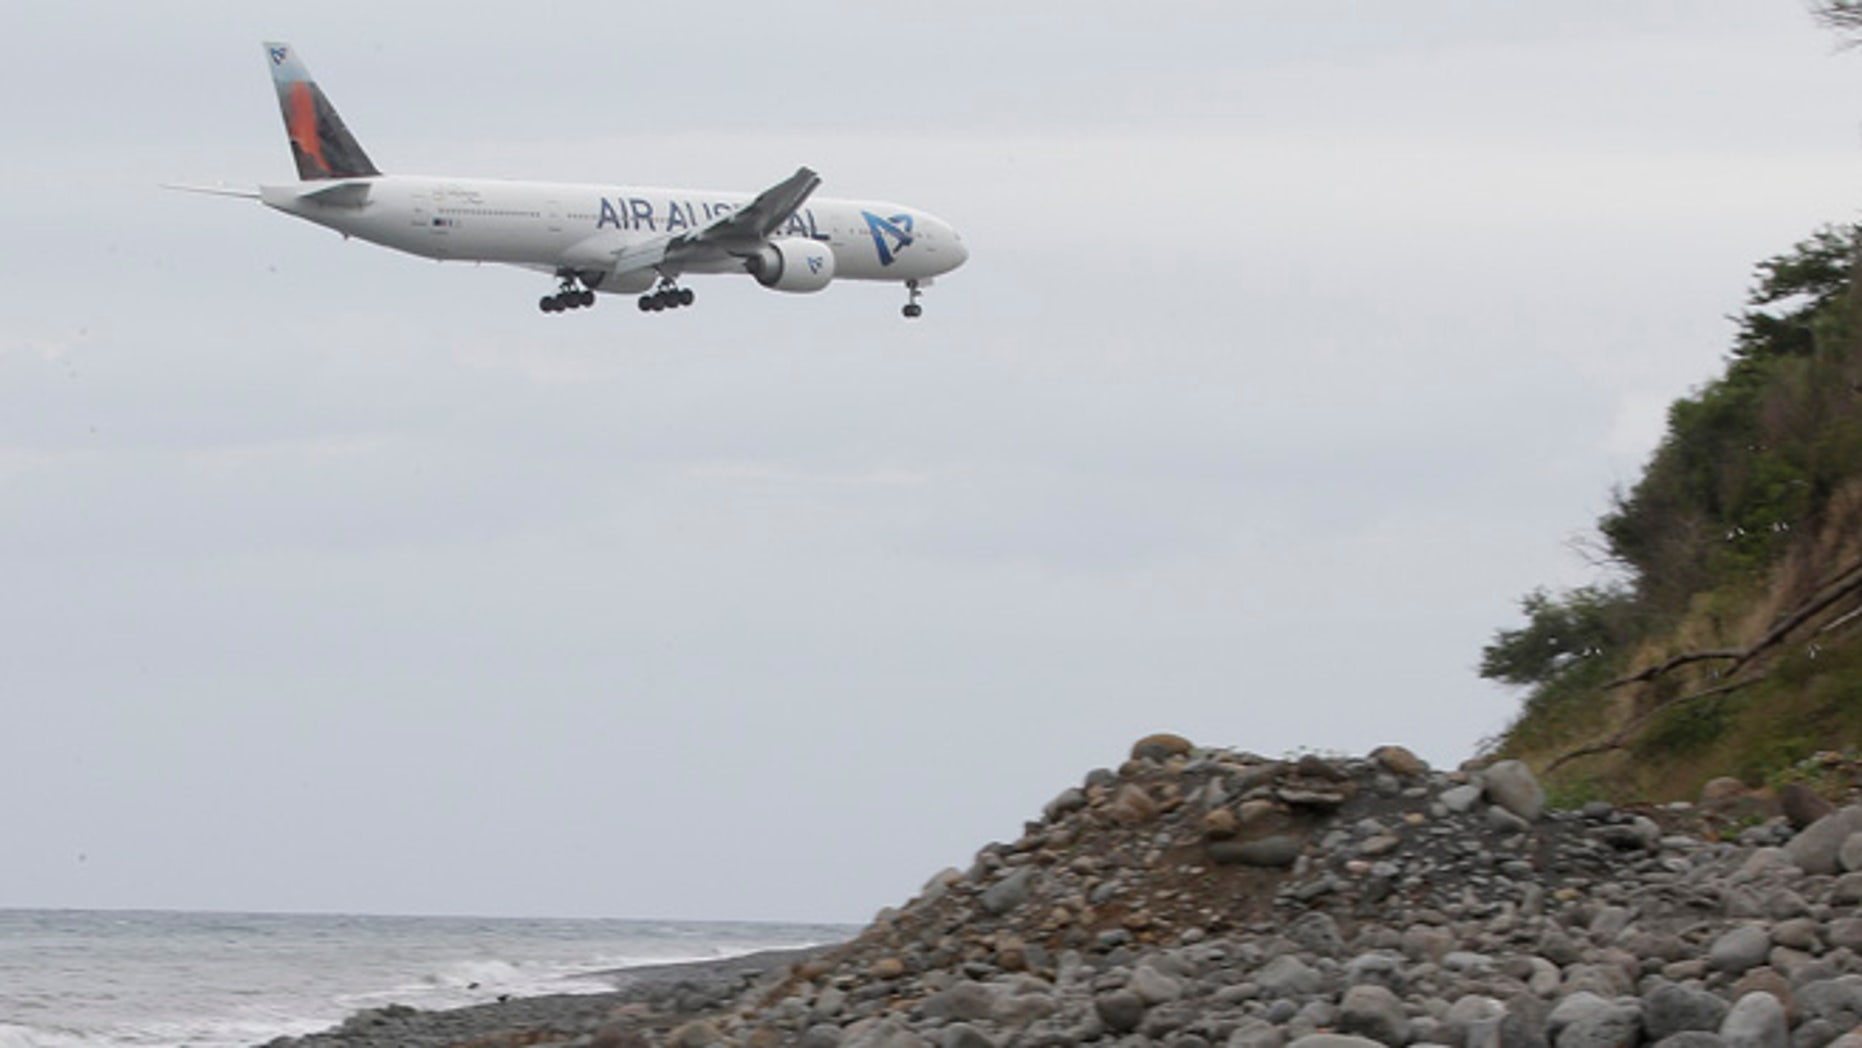 Aug. 3: An airplane flies over the Jamaique beach in Saint-Denis on the French Indian Ocean island of La Reunion.